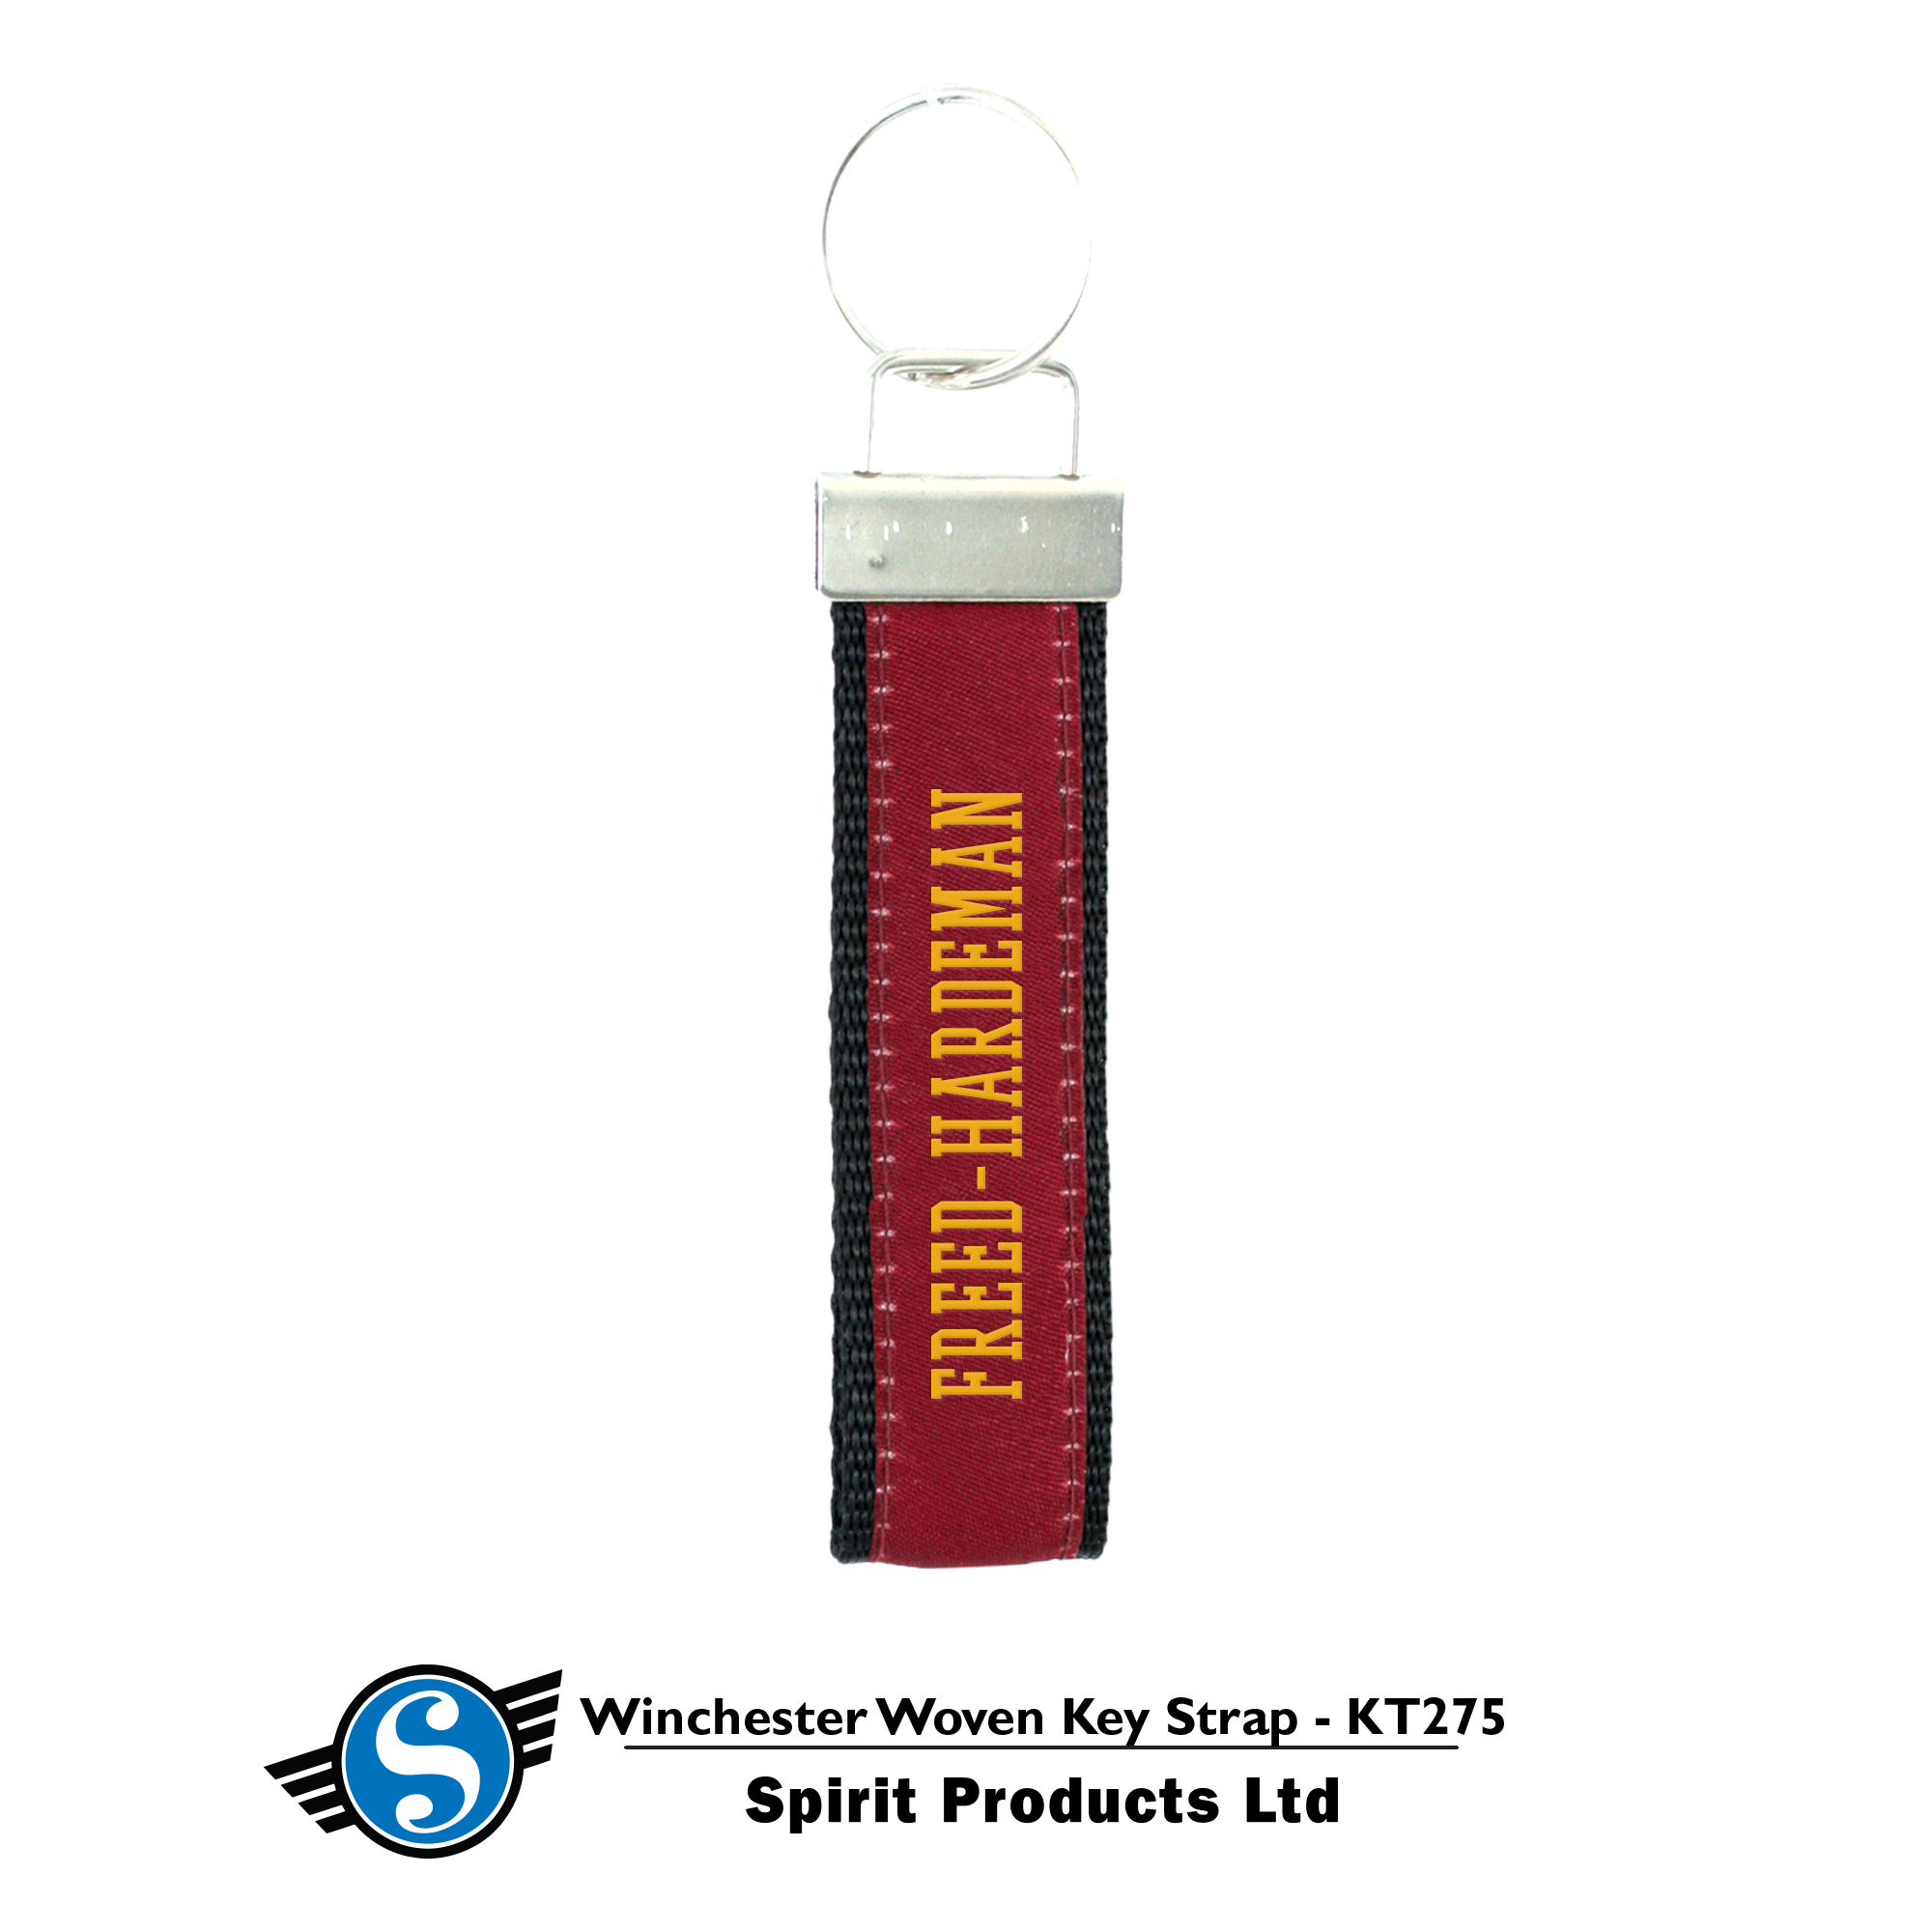 Freed-Hardeman Key Strap